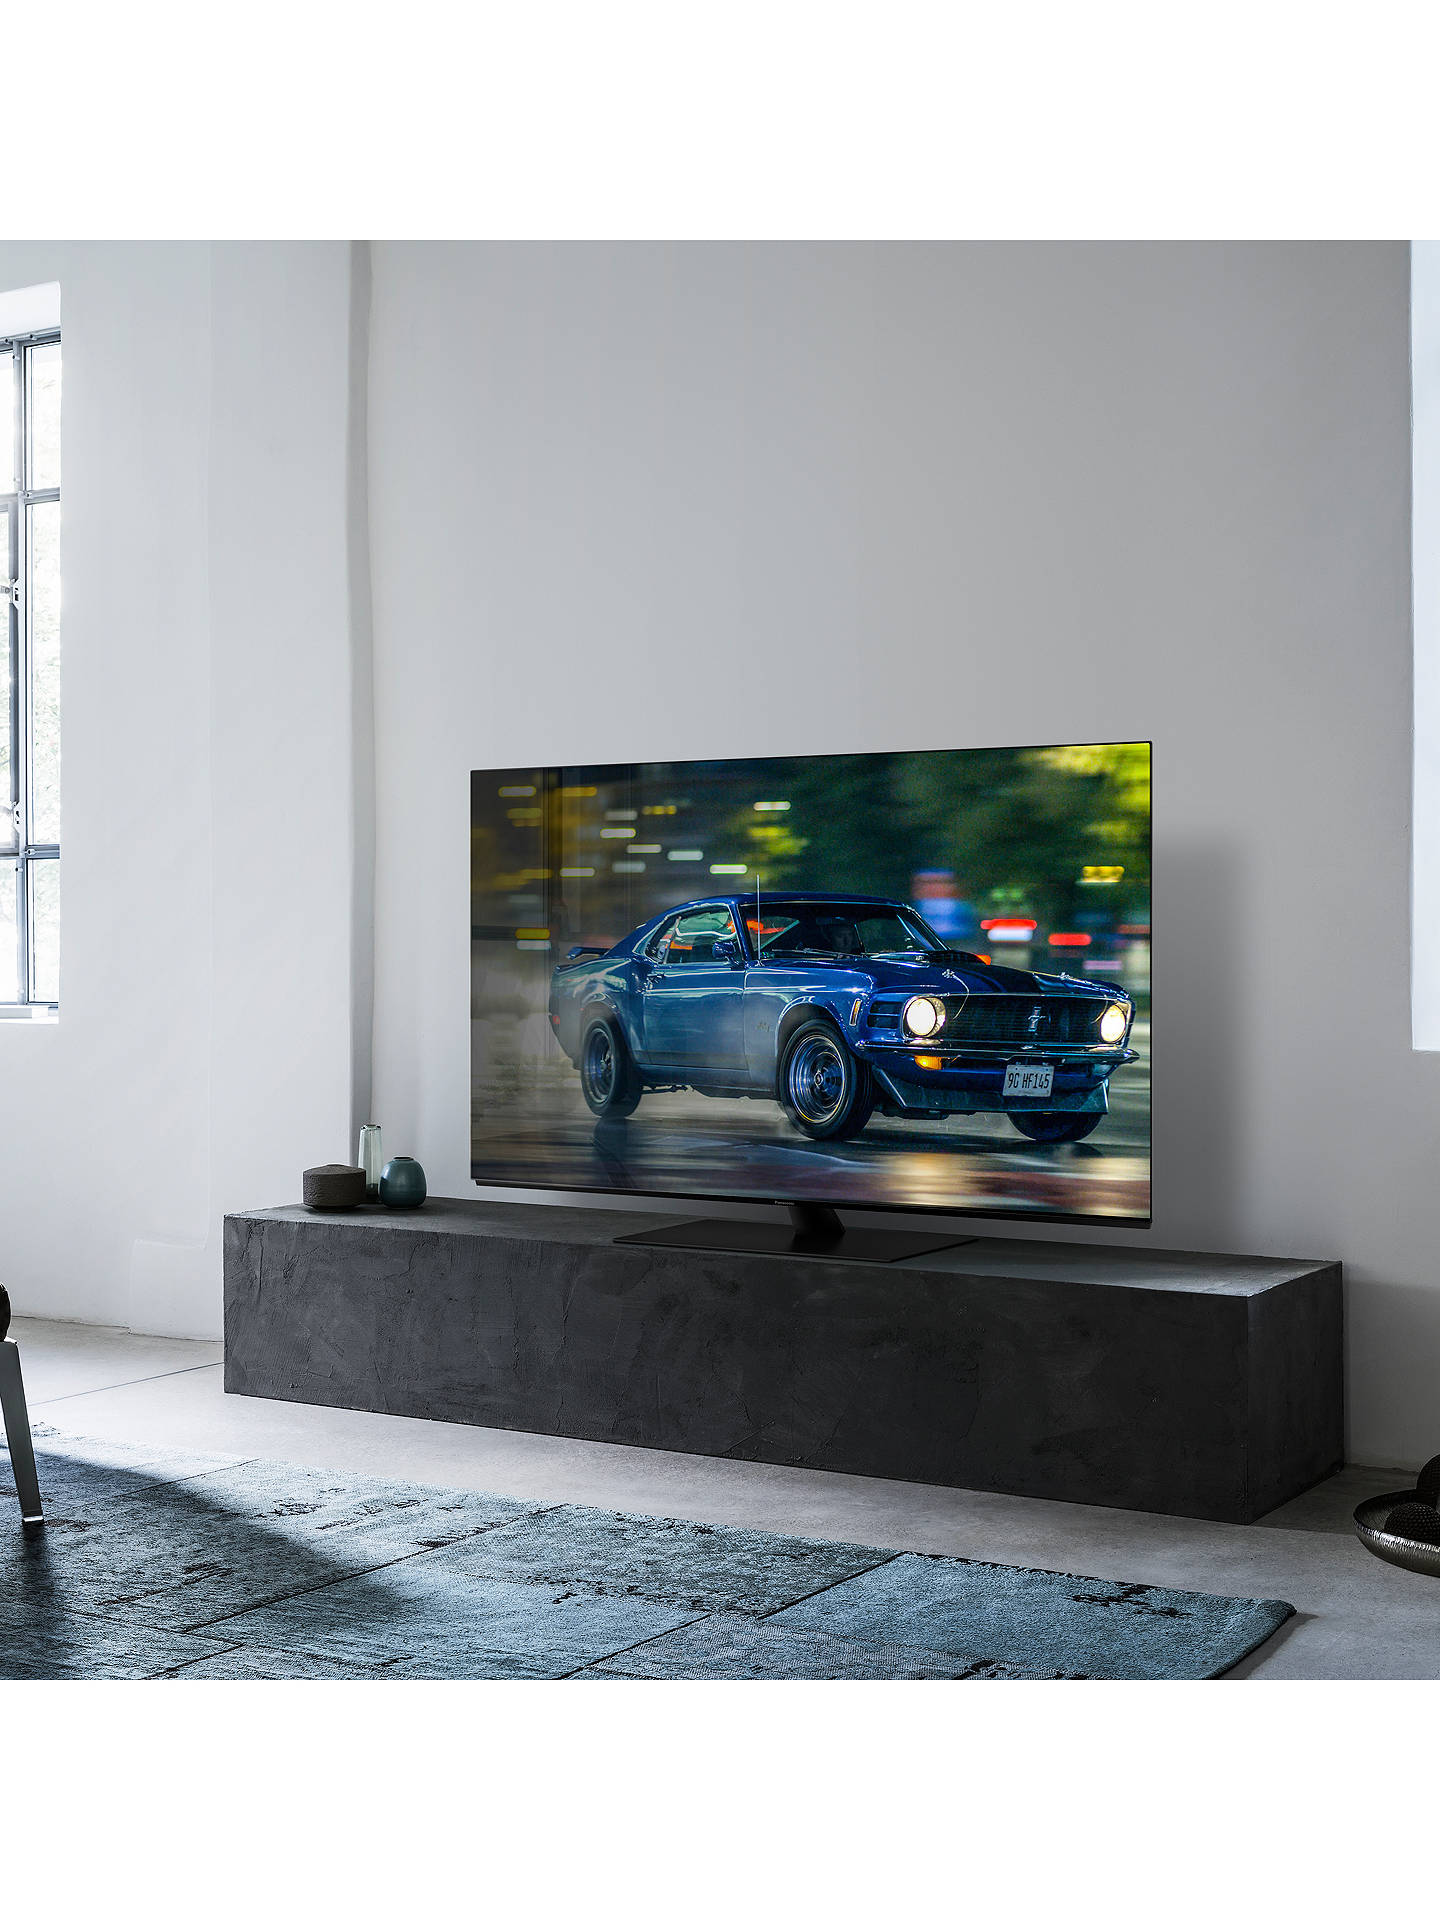 "Buy Panasonic TX-55GZ950B (2019) OLED HDR 4K Ultra HD Smart TV, 55"" with Freeview Play & Dolby Atmos, Ultra HD Premium Certified, Graphite & Black Online at johnlewis.com"